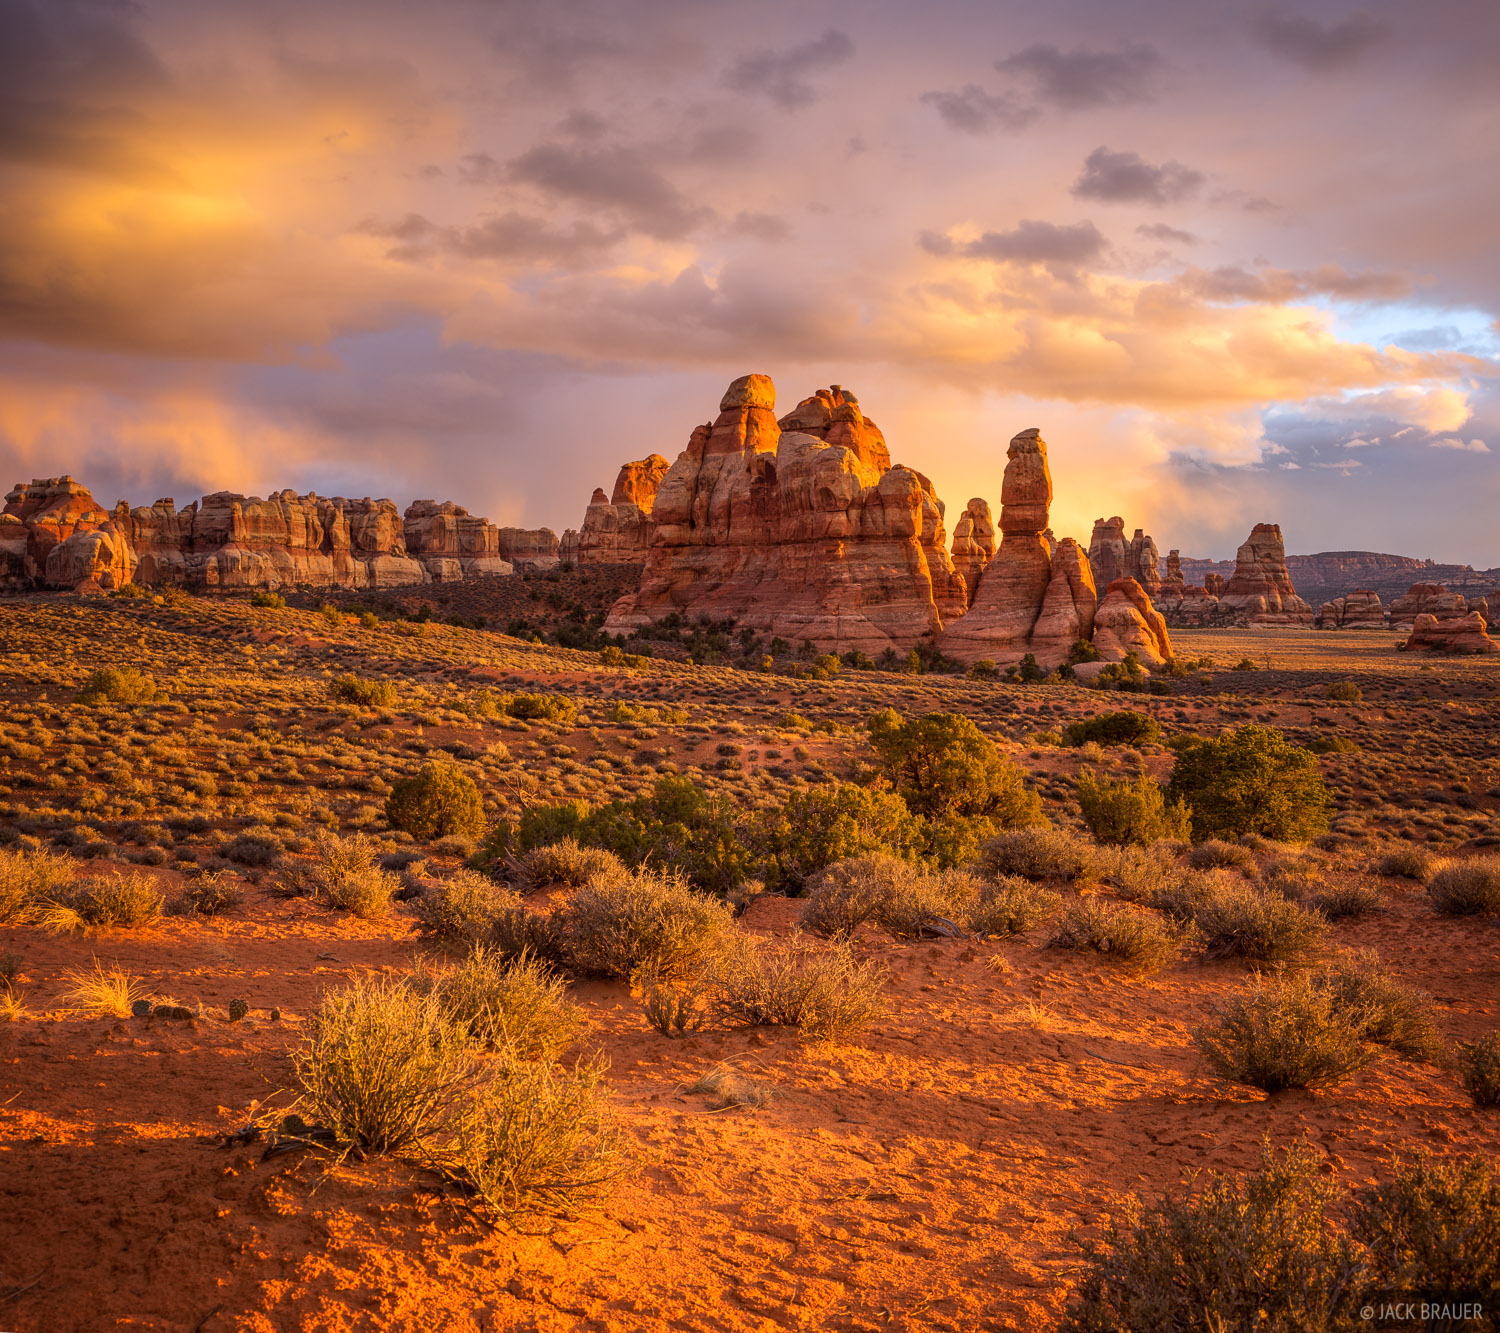 An awesome sunset over Chesler Park in the Needles District of Canyonlands National Park, Utah.